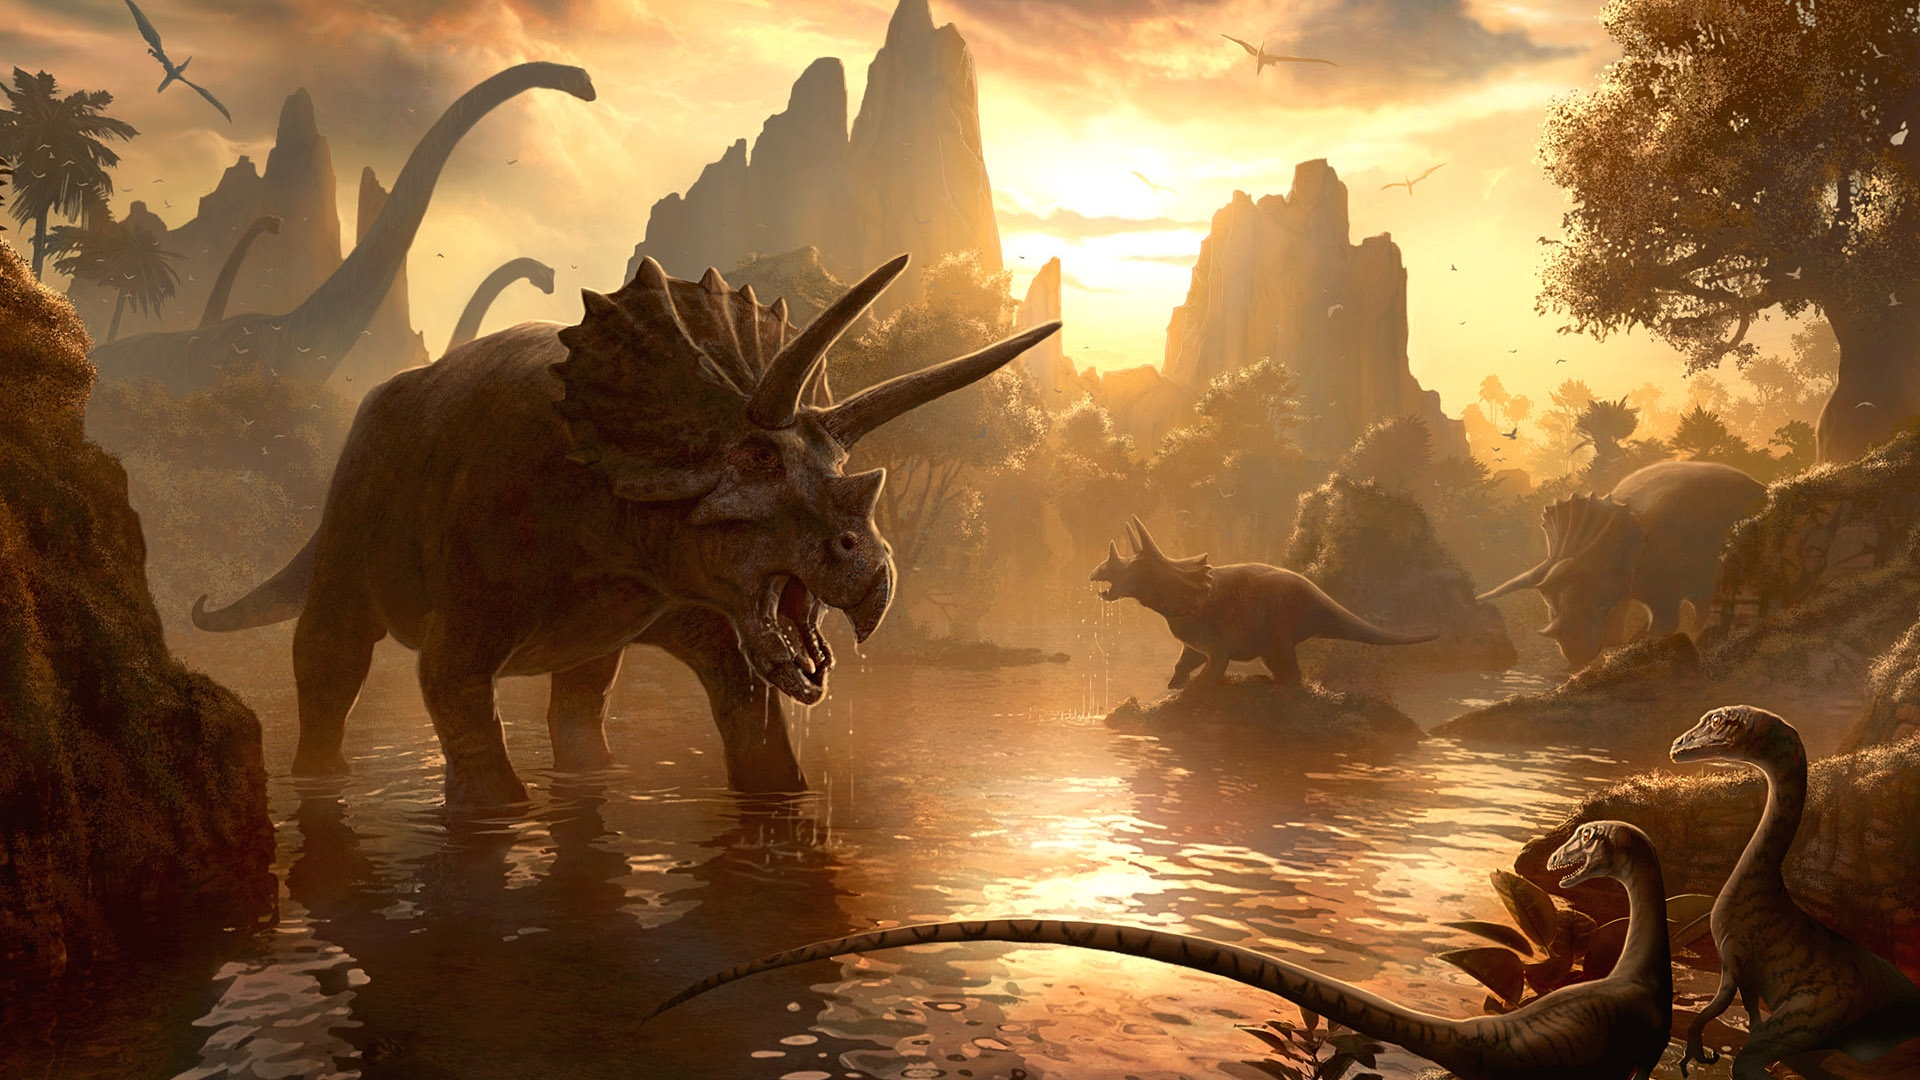 Dinosaur Wallpapers Dinosaurs Triceratop River HD Wallpaper 1920x1080